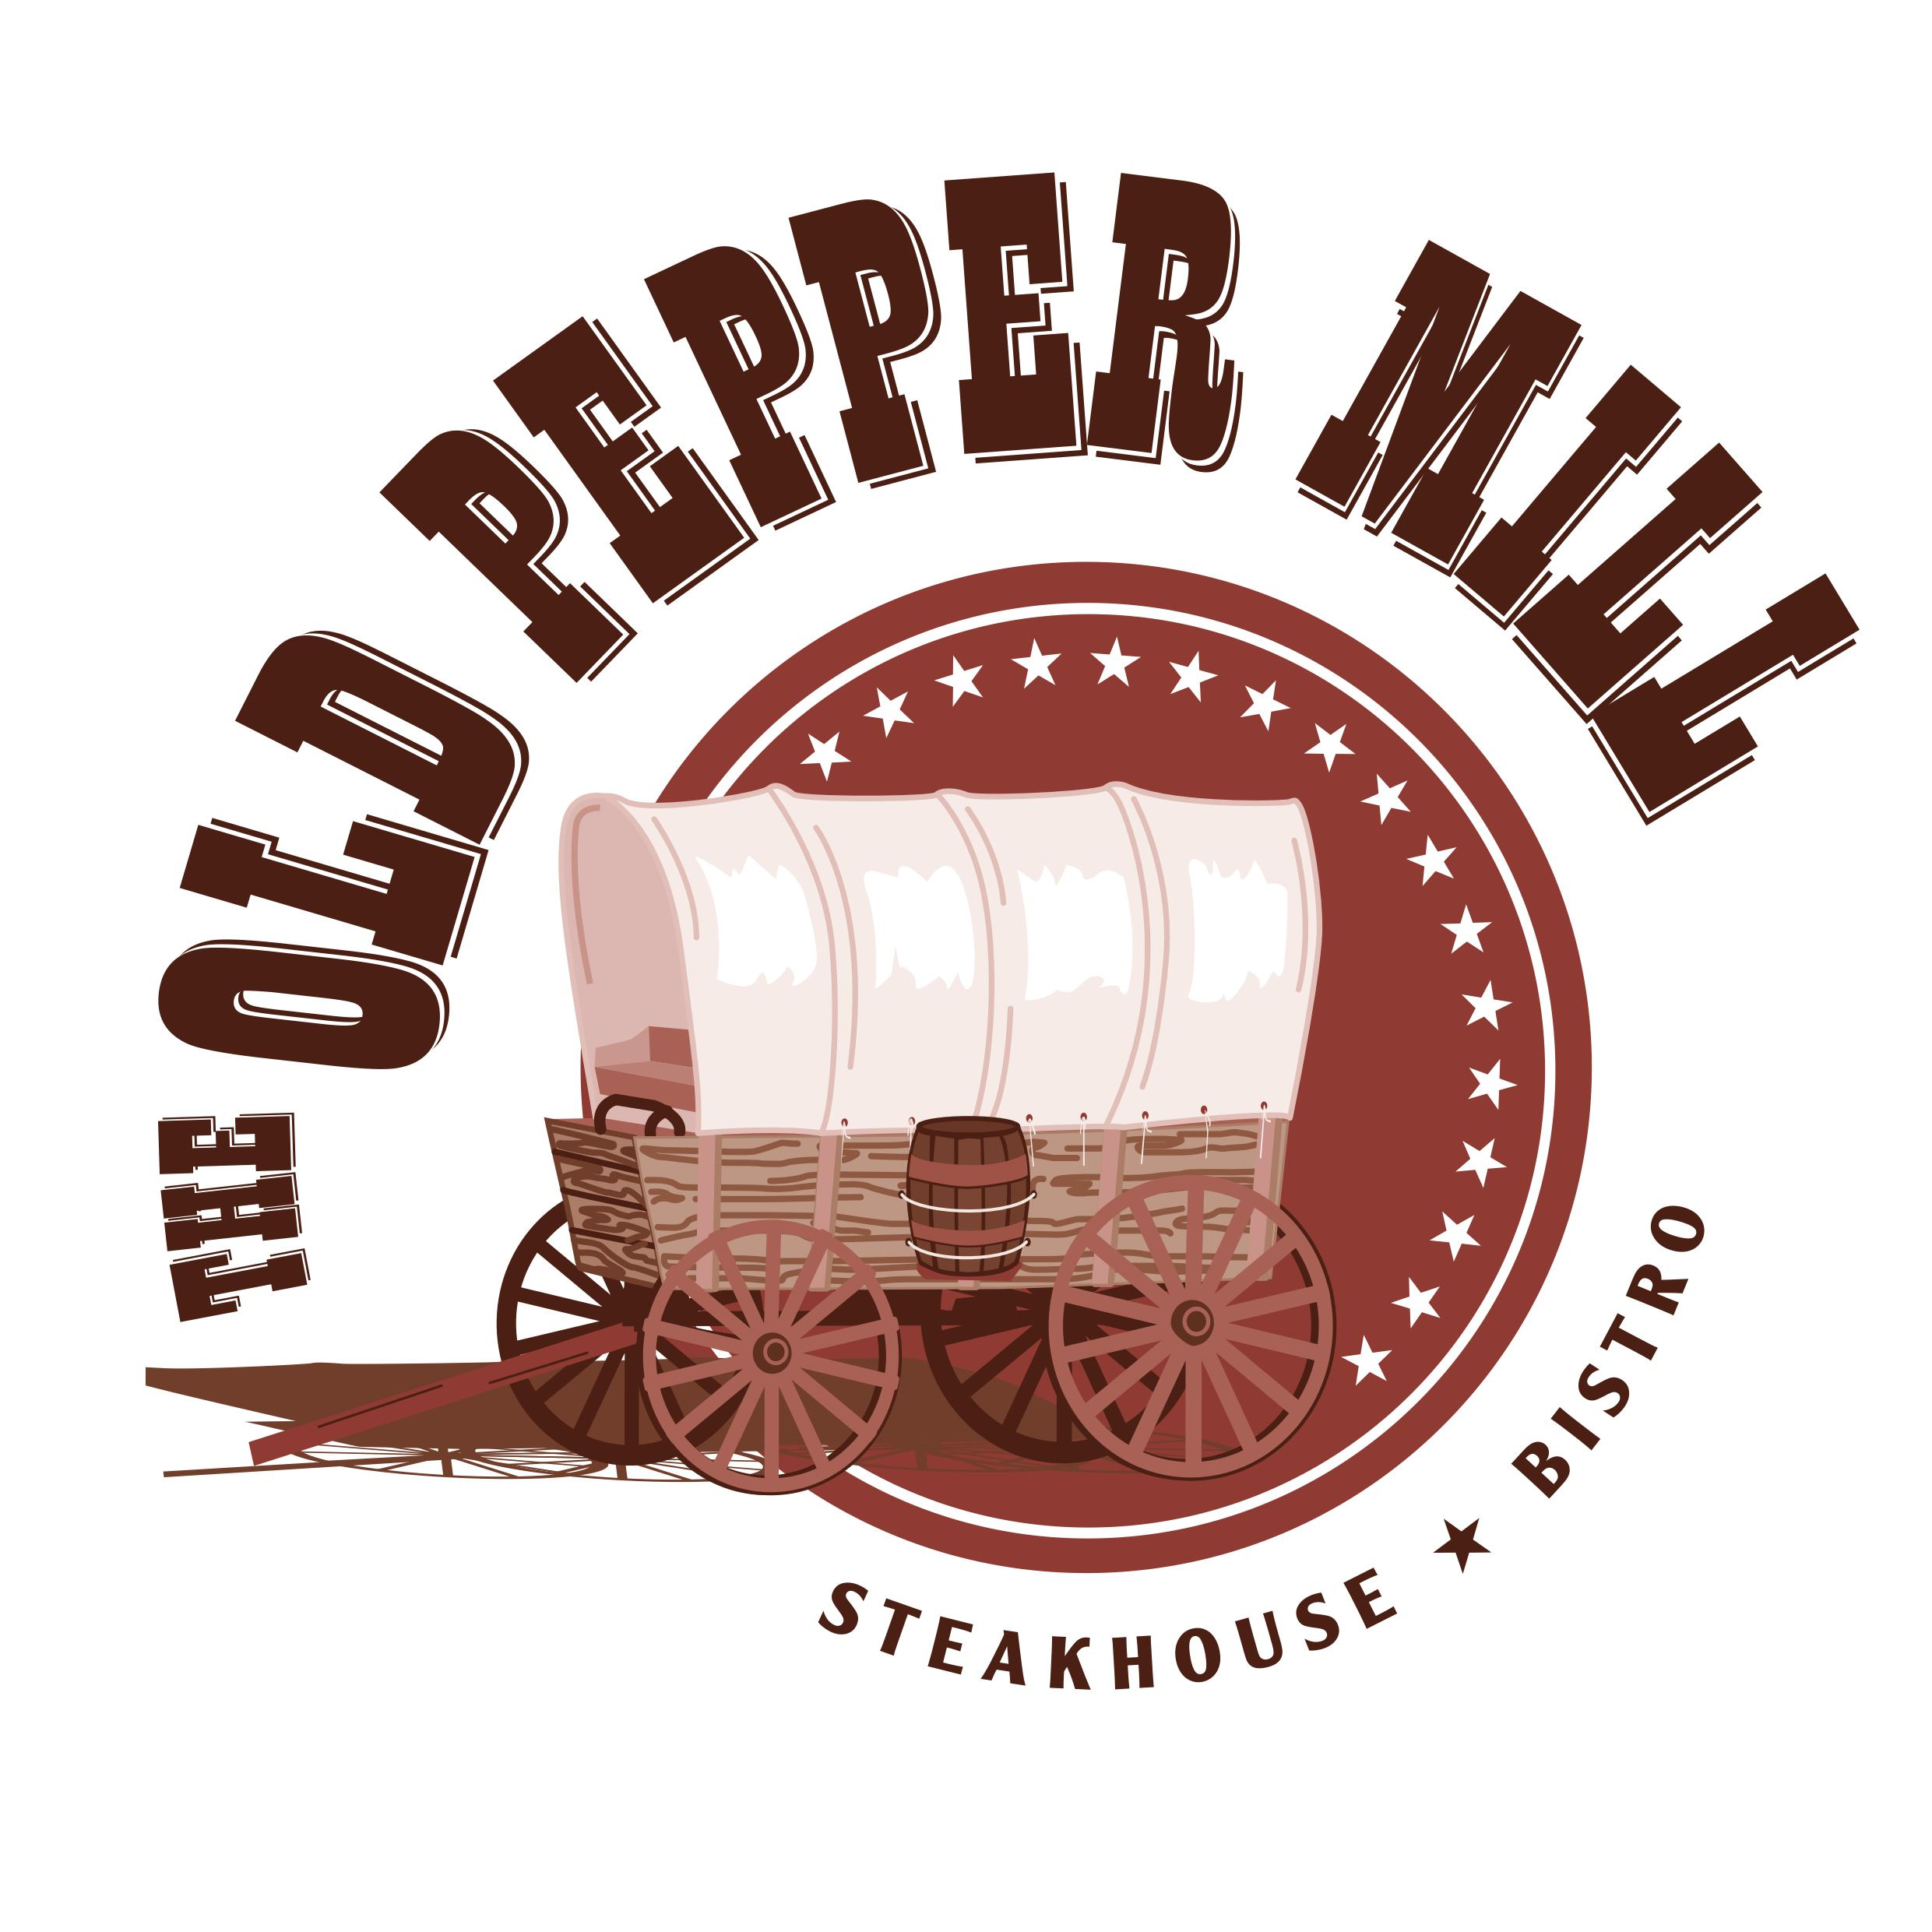 Theoldpeppermill Logo